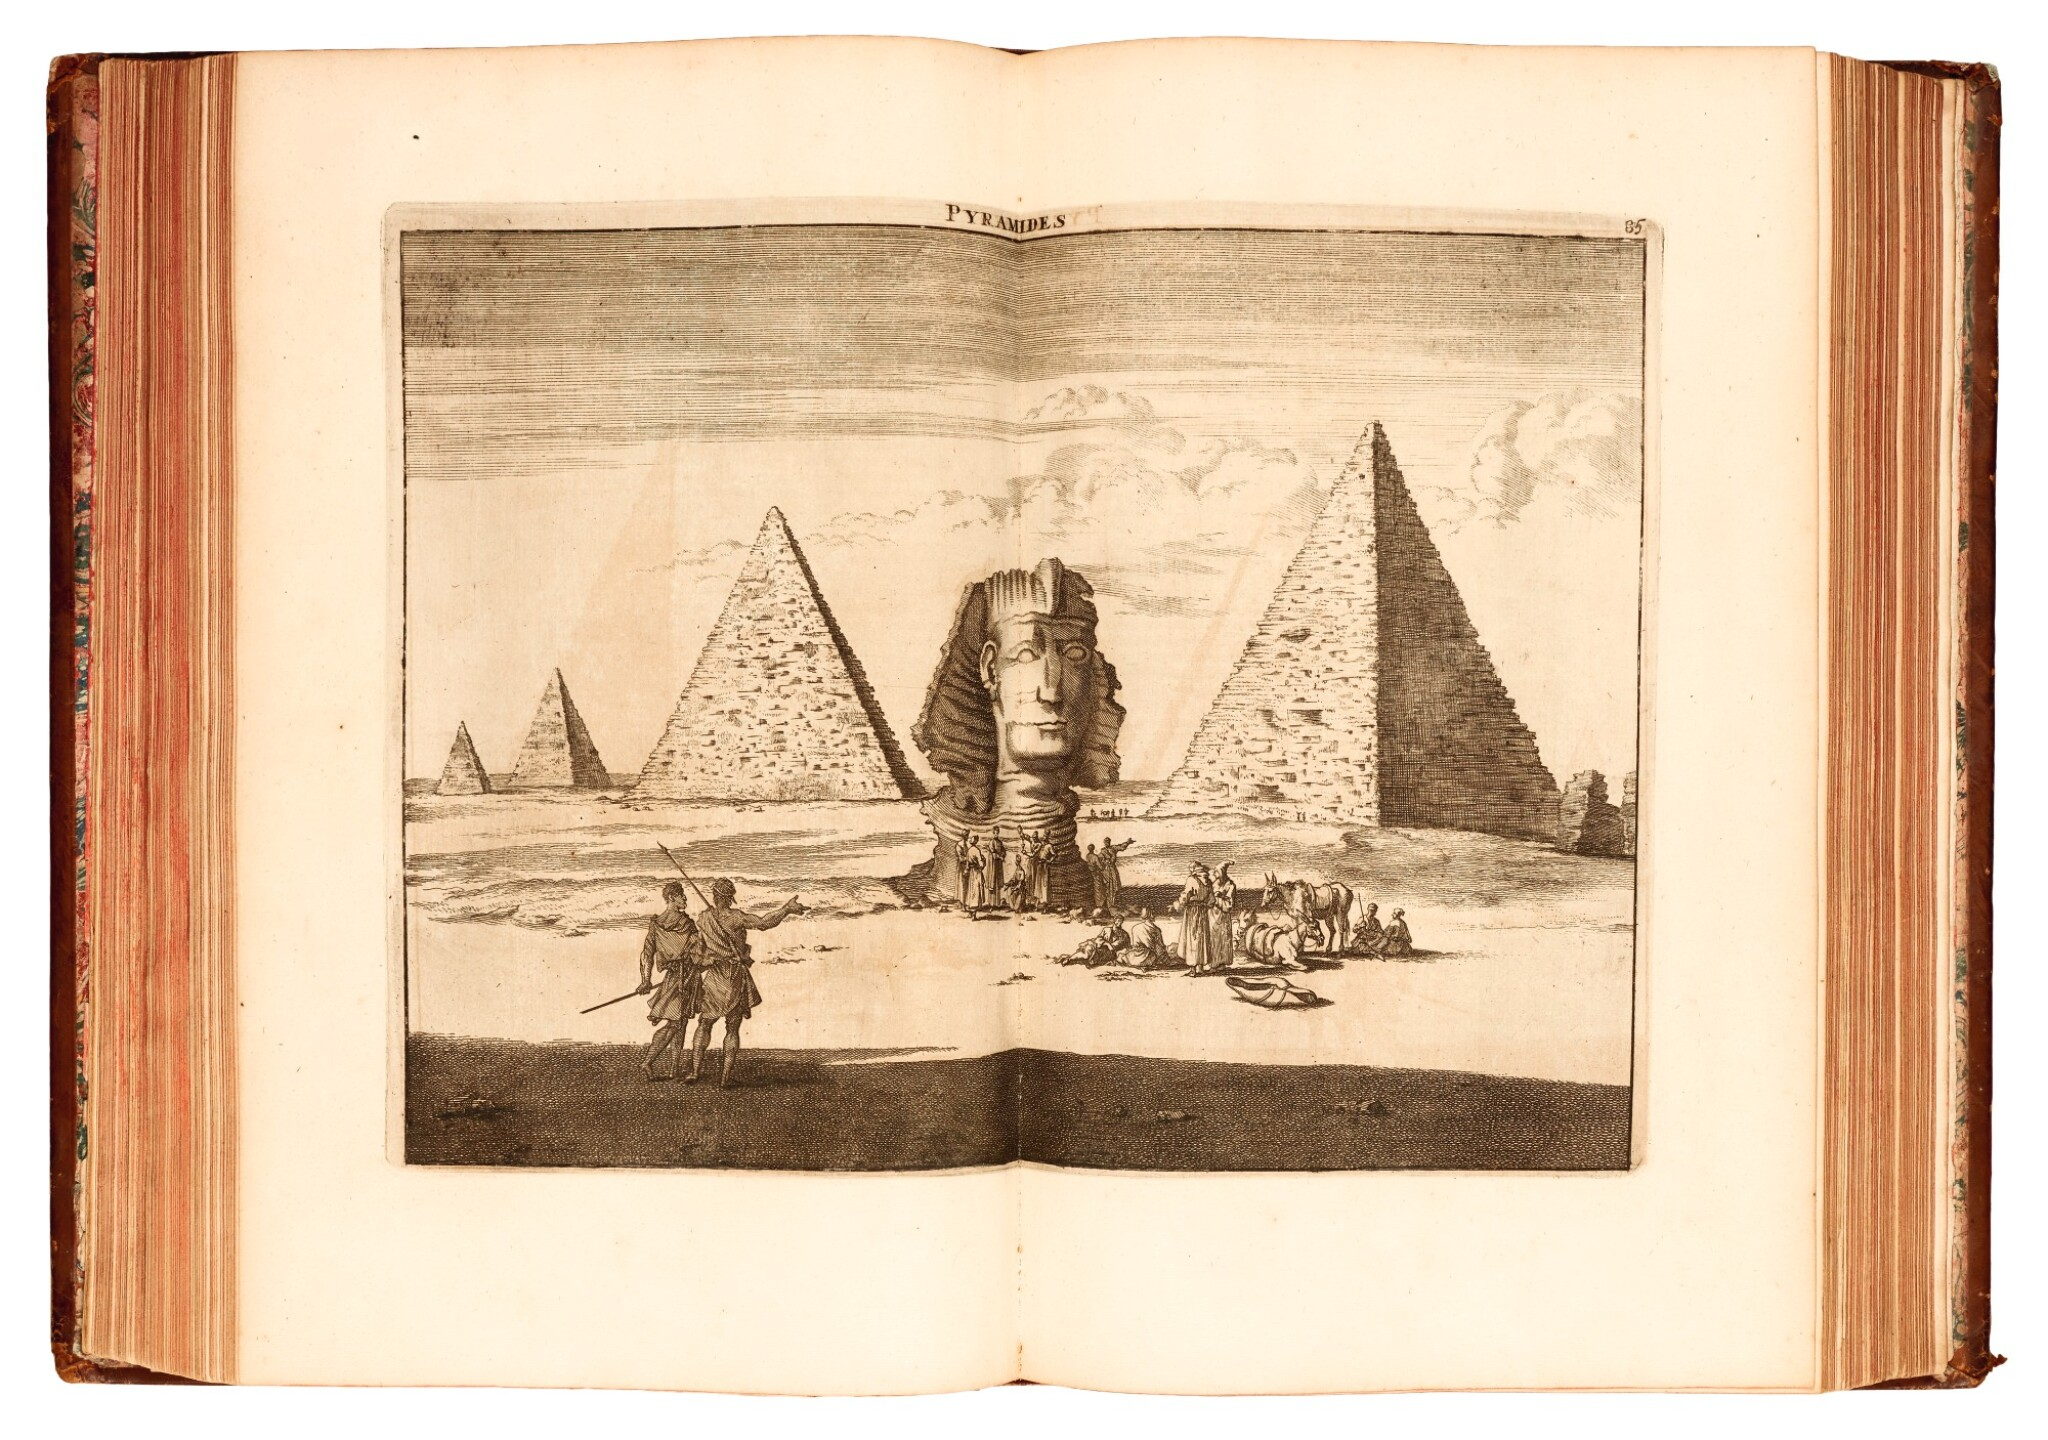 View full screen - View 1 of Lot 163. Bruyn | Voyage au Levant, 1700.